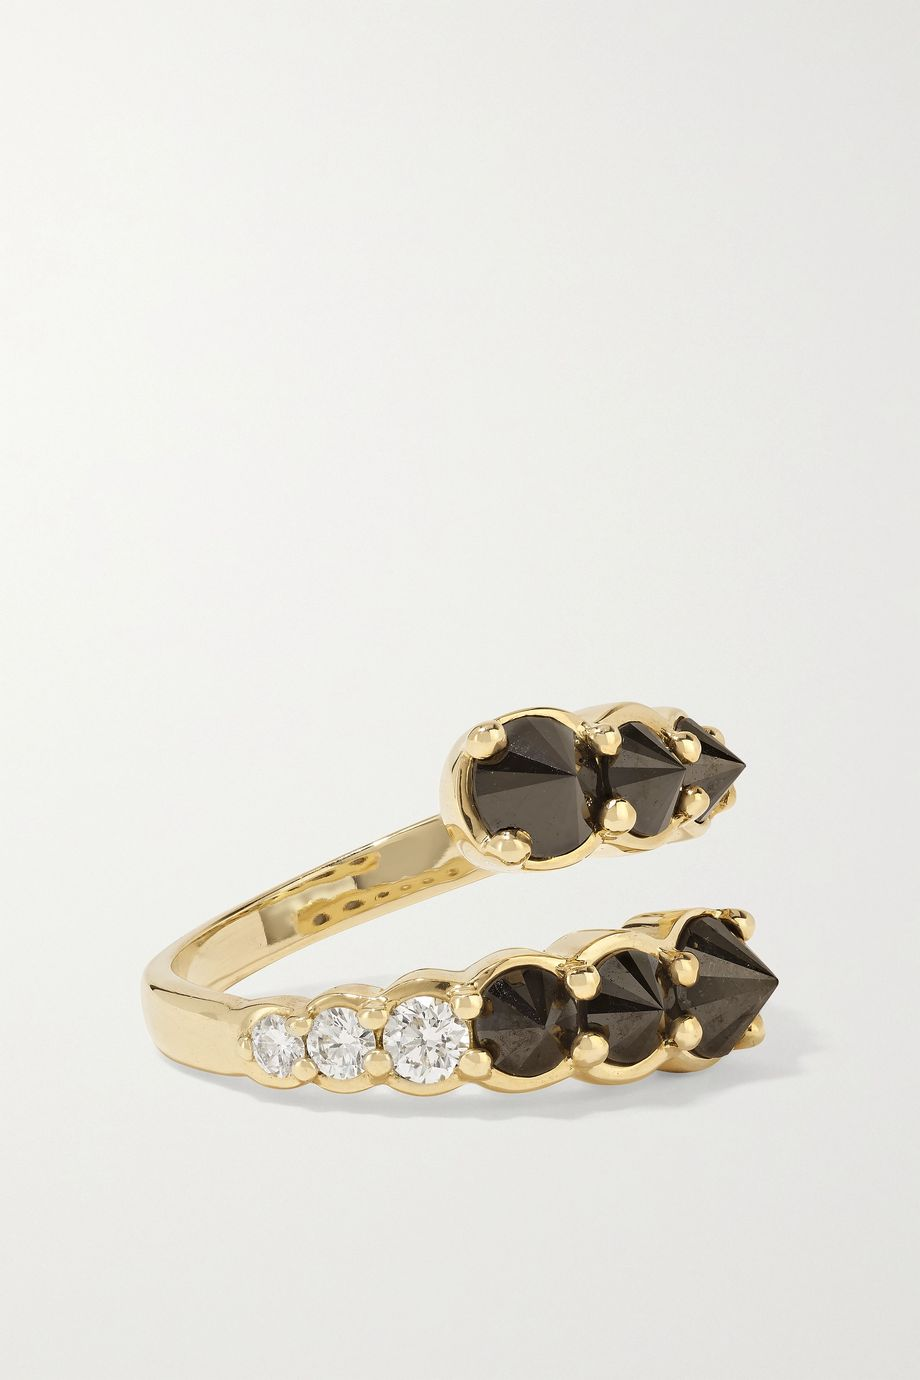 Ara Vartanian 18-karat gold diamond ring